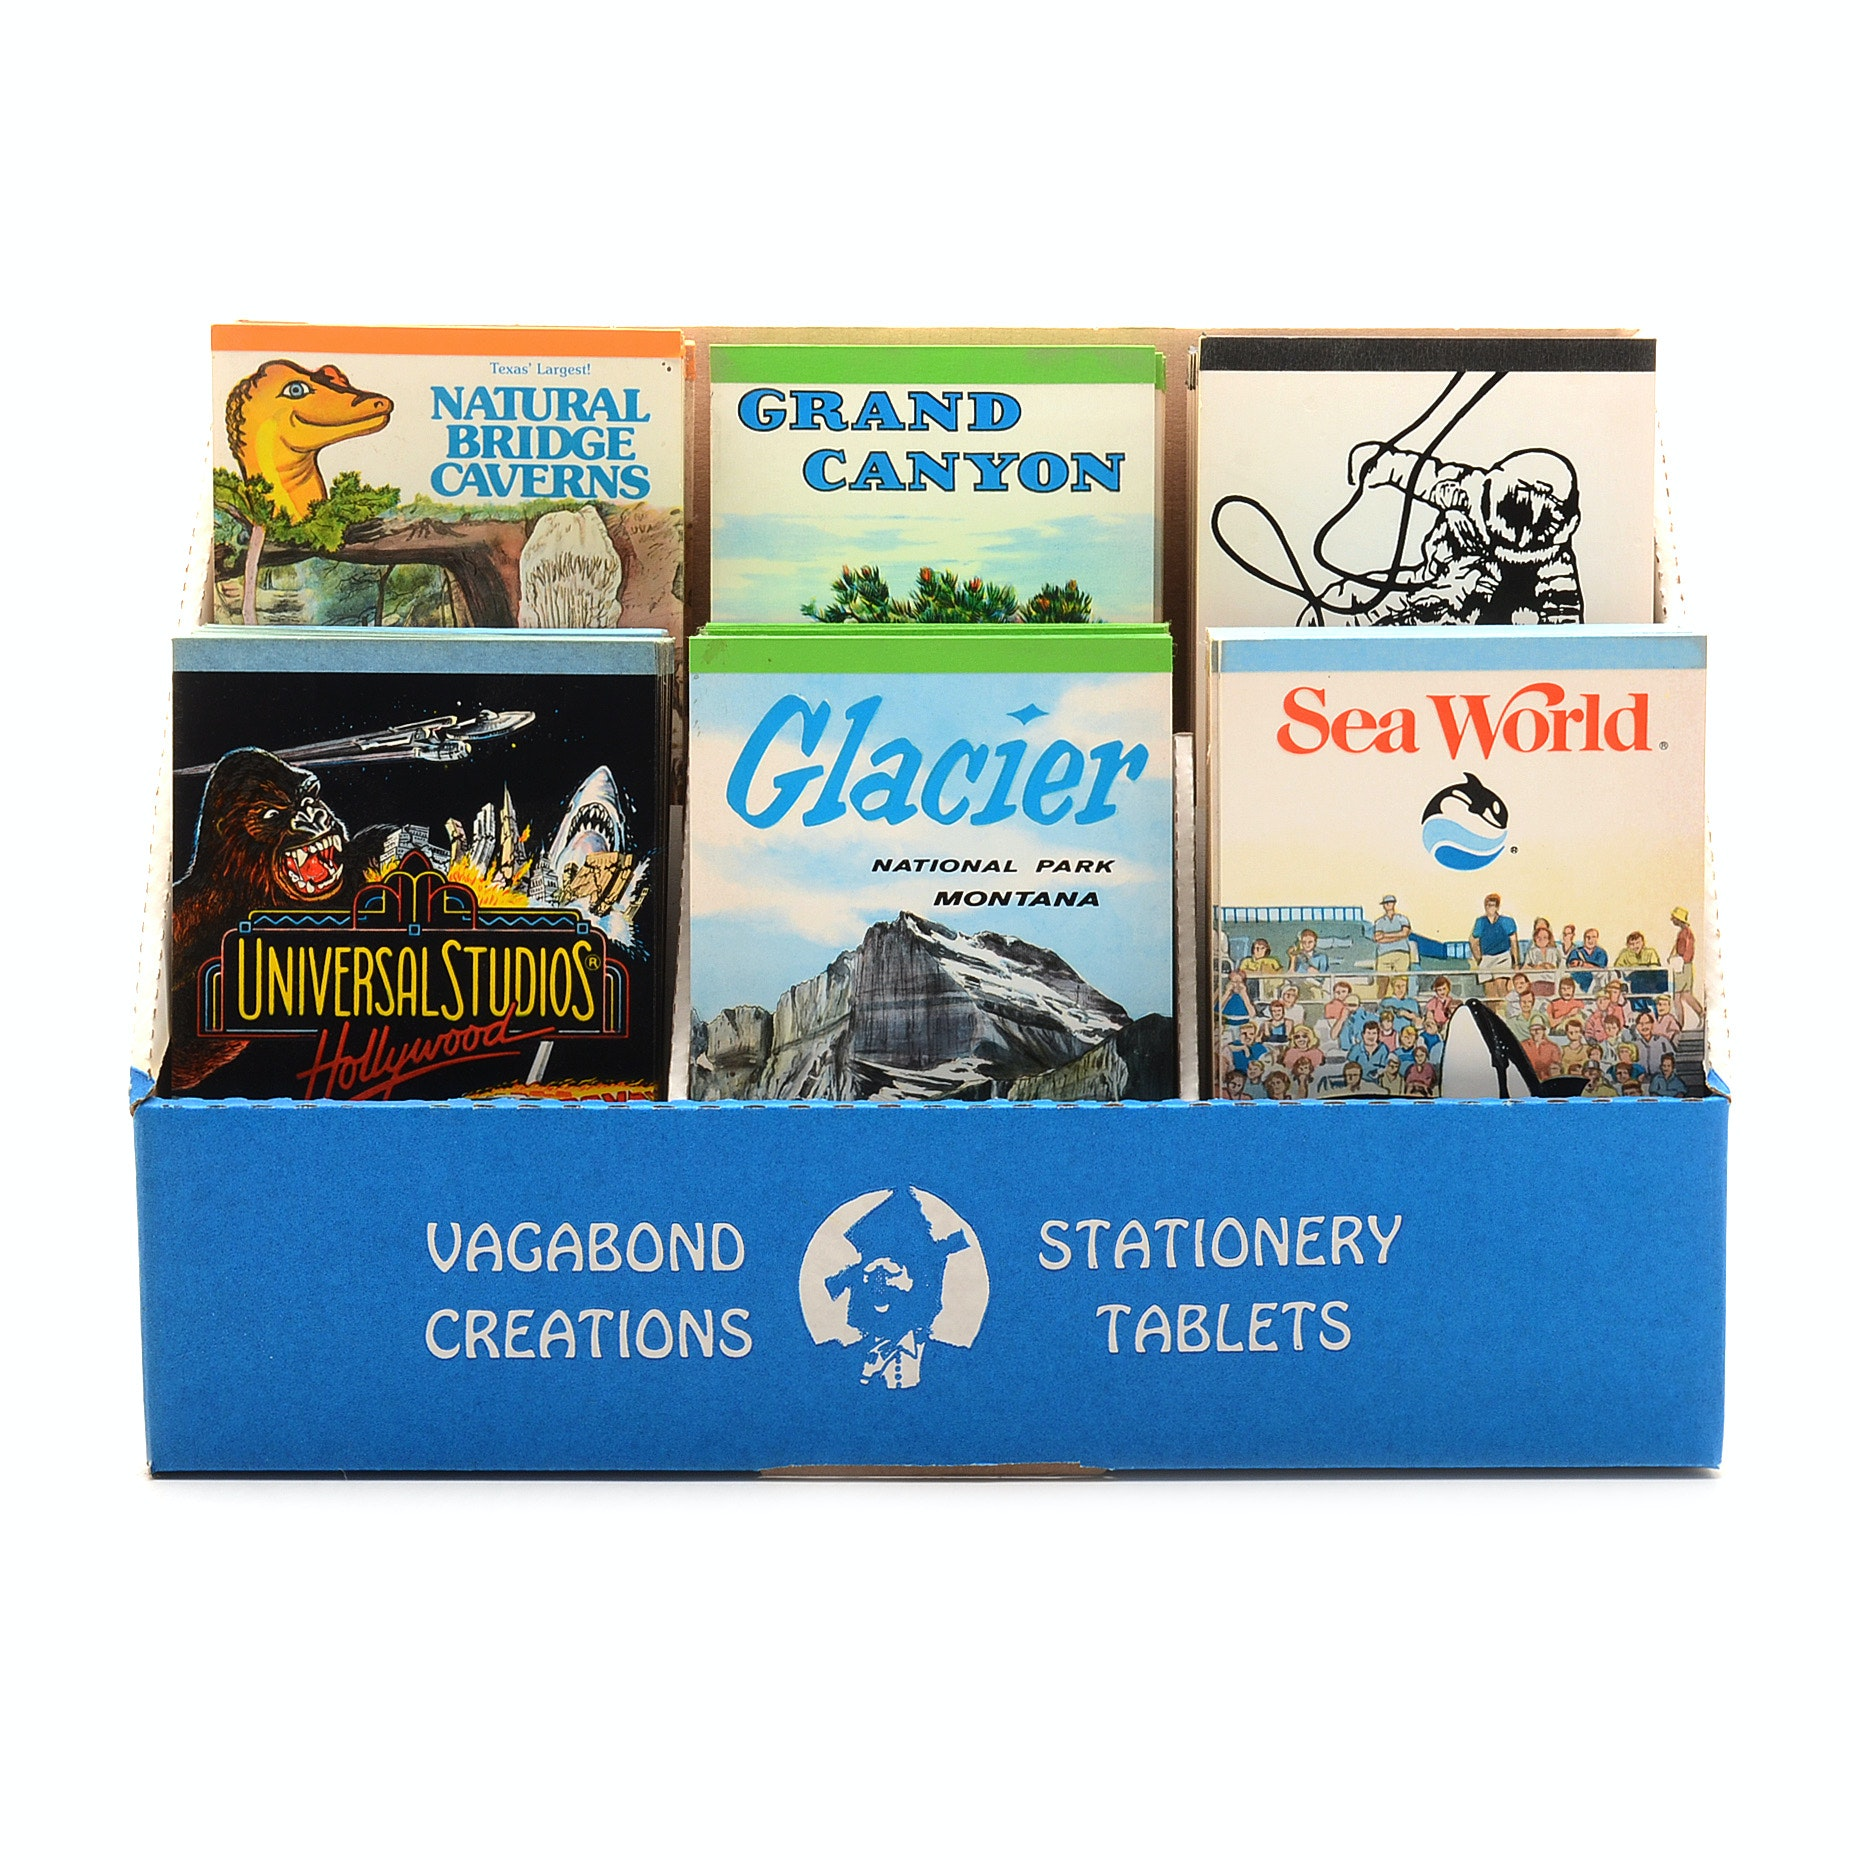 Vacation Tourist Spot Themed Stationary Tablets Lot from Vagabond Creations